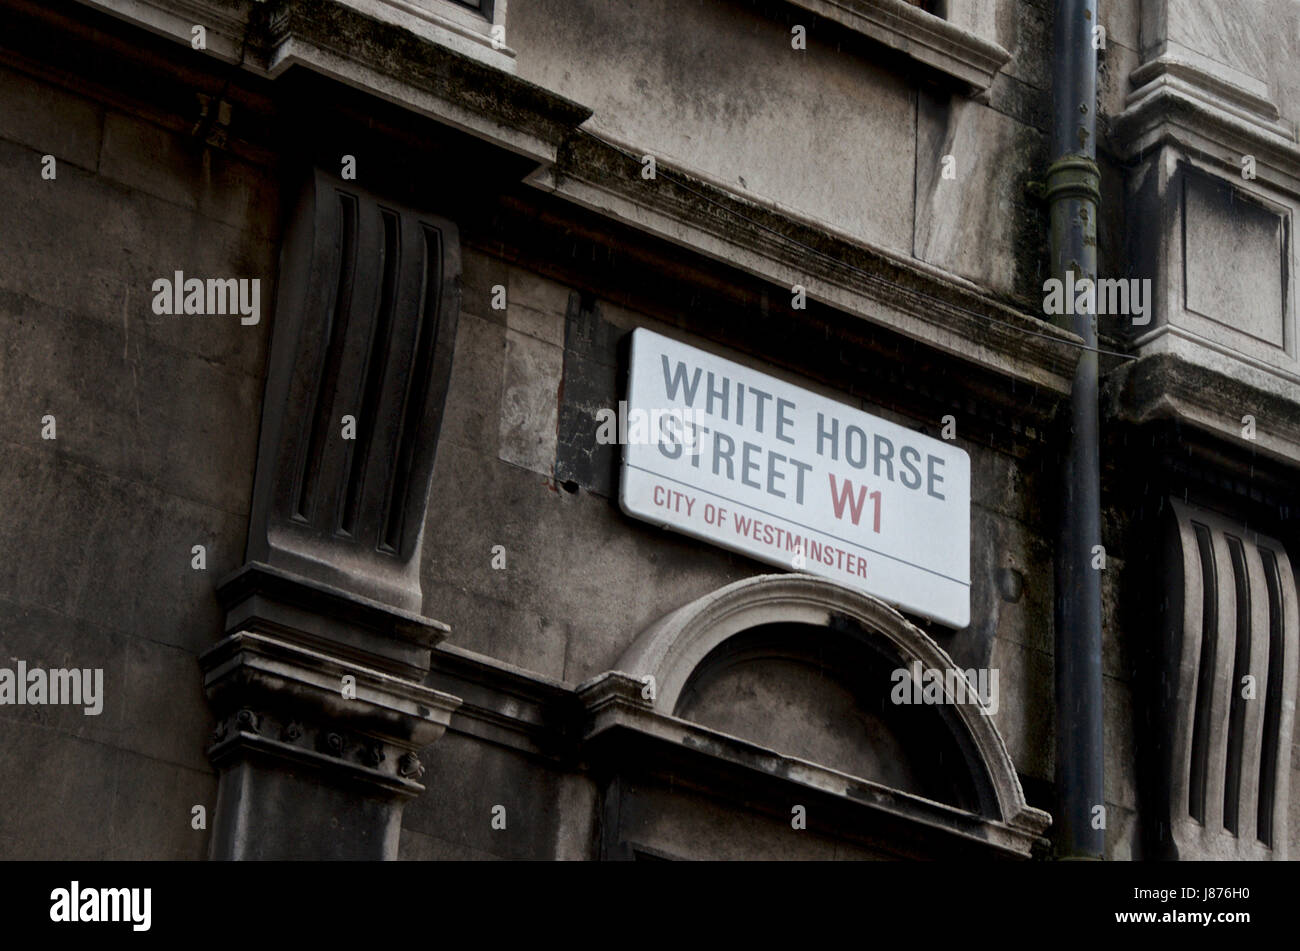 A London street sign, White Horse Street W1 on a dirty London building. - Stock Image